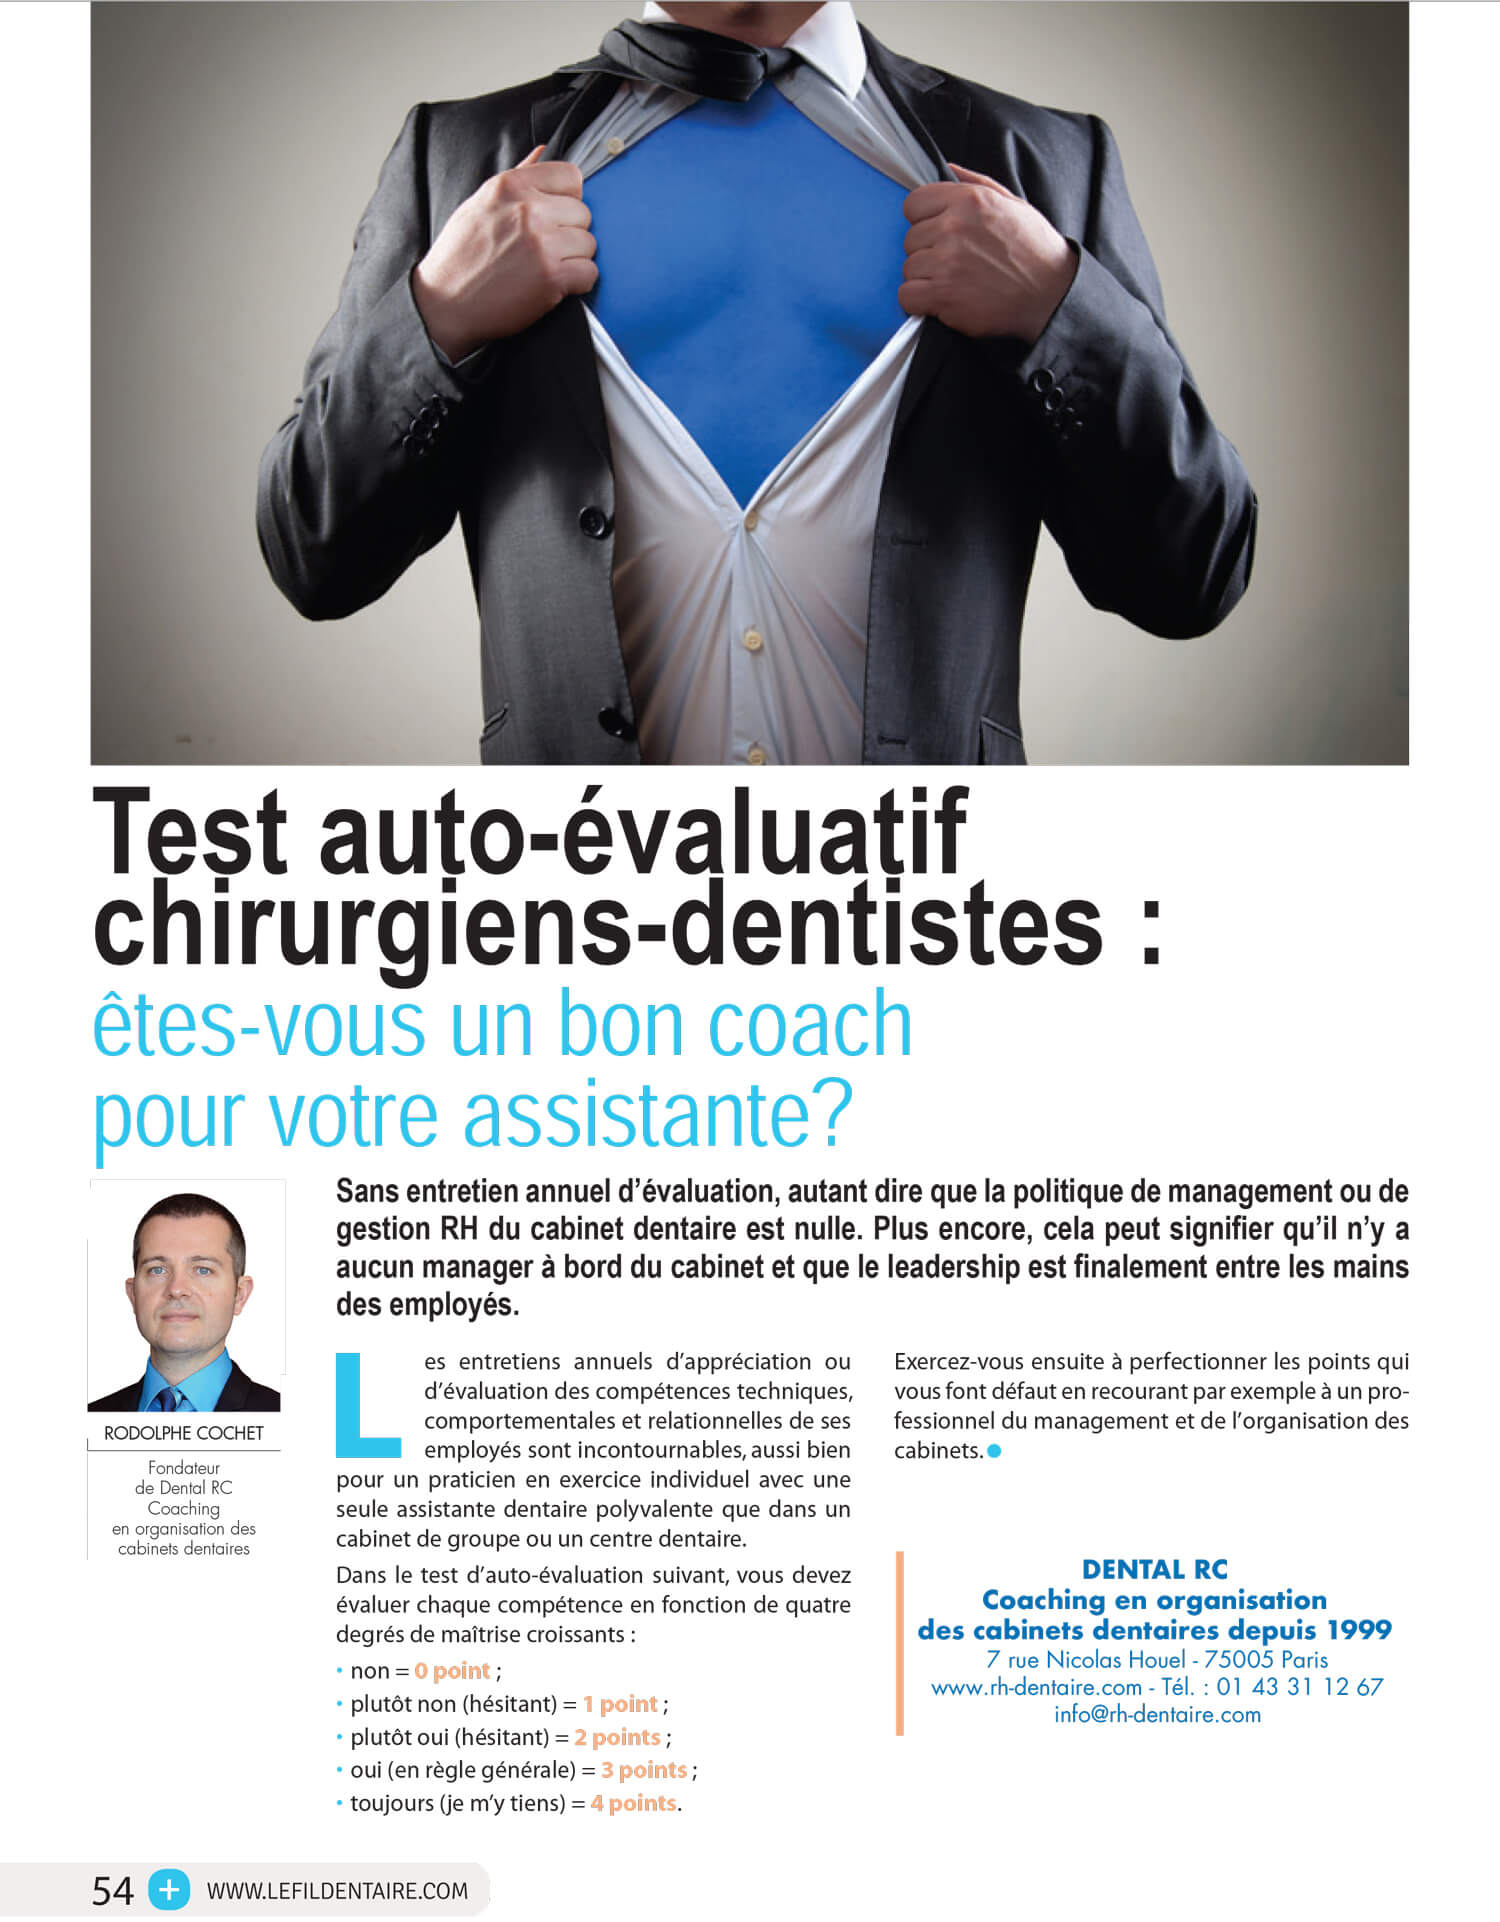 evaluation-dentiste-manager-coach-coaching-cabinet-dentaire-rodolphe-cochet.jpg